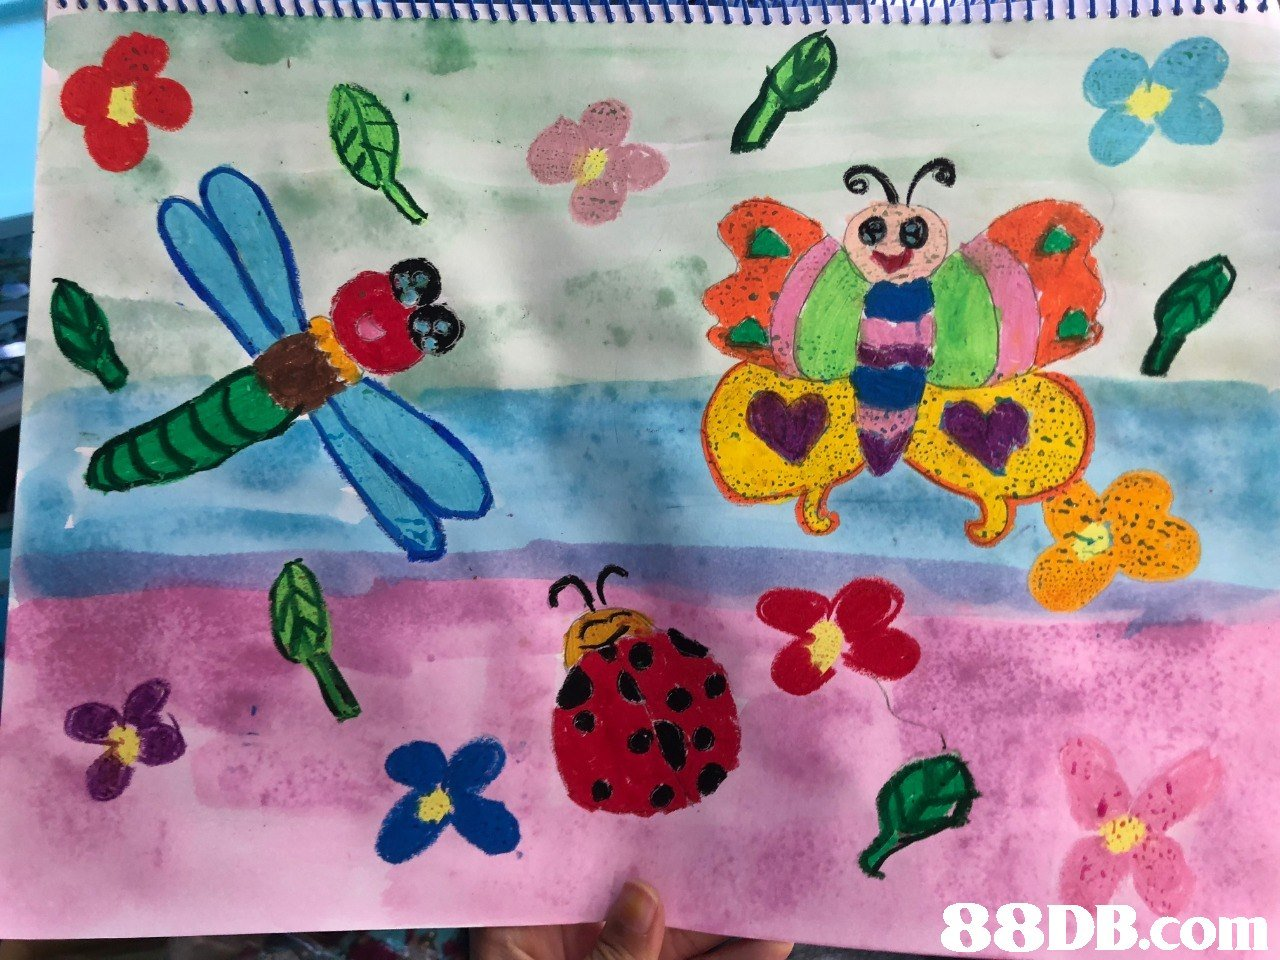 Insect,Textile,Child art,